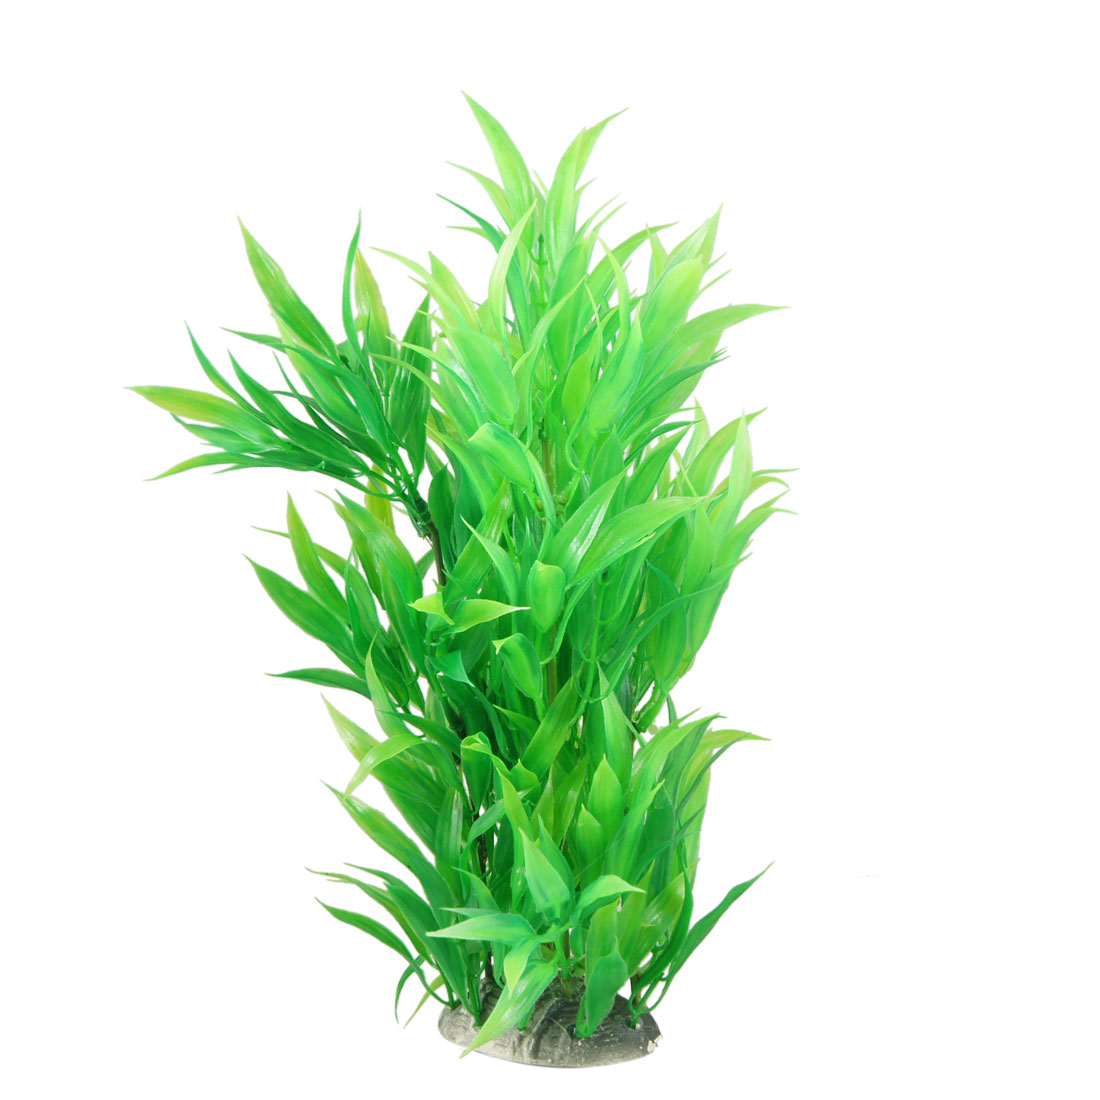 "12.4"" Height Green Manmade Water Plant Grass for Fish Tank Aquarium"